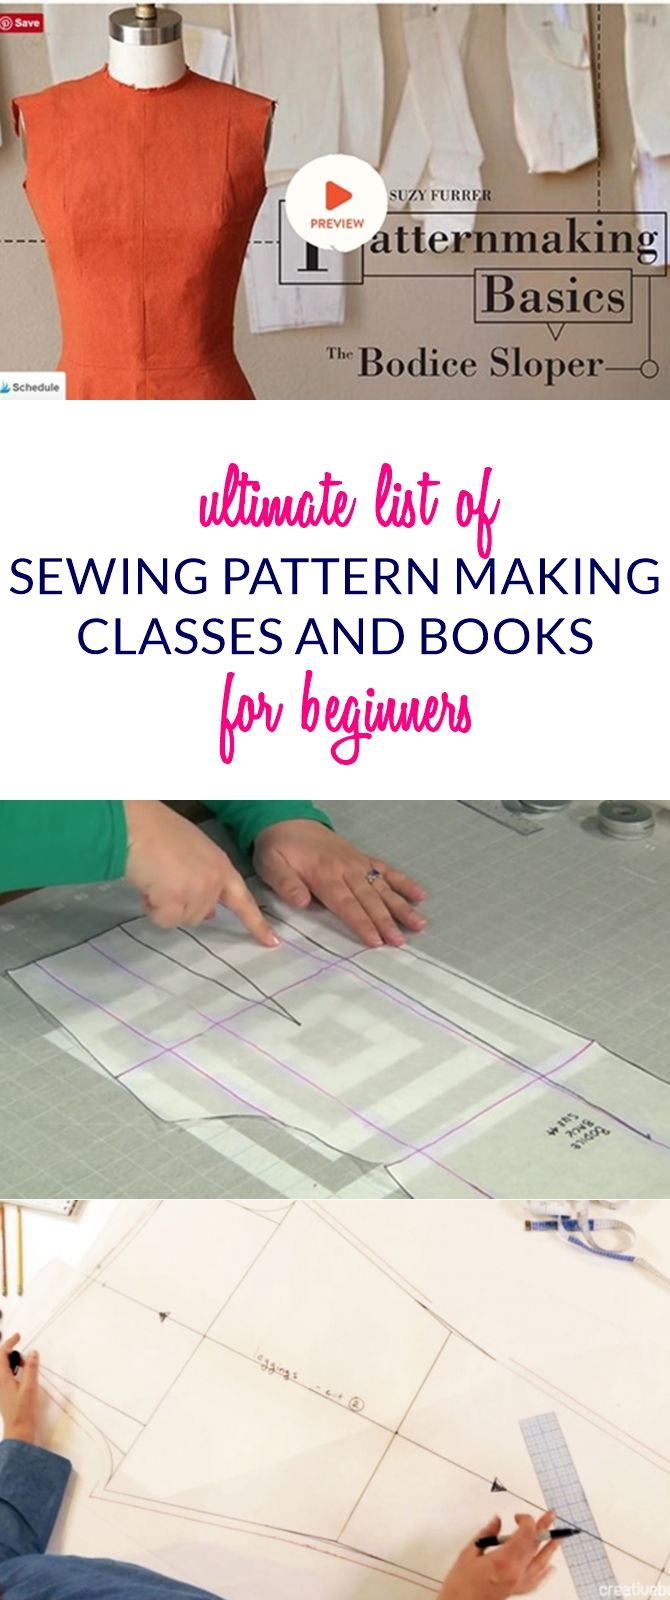 Ultimate list of online sewing pattern making classes books ultimate list of online sewing pattern making classes books jeuxipadfo Image collections